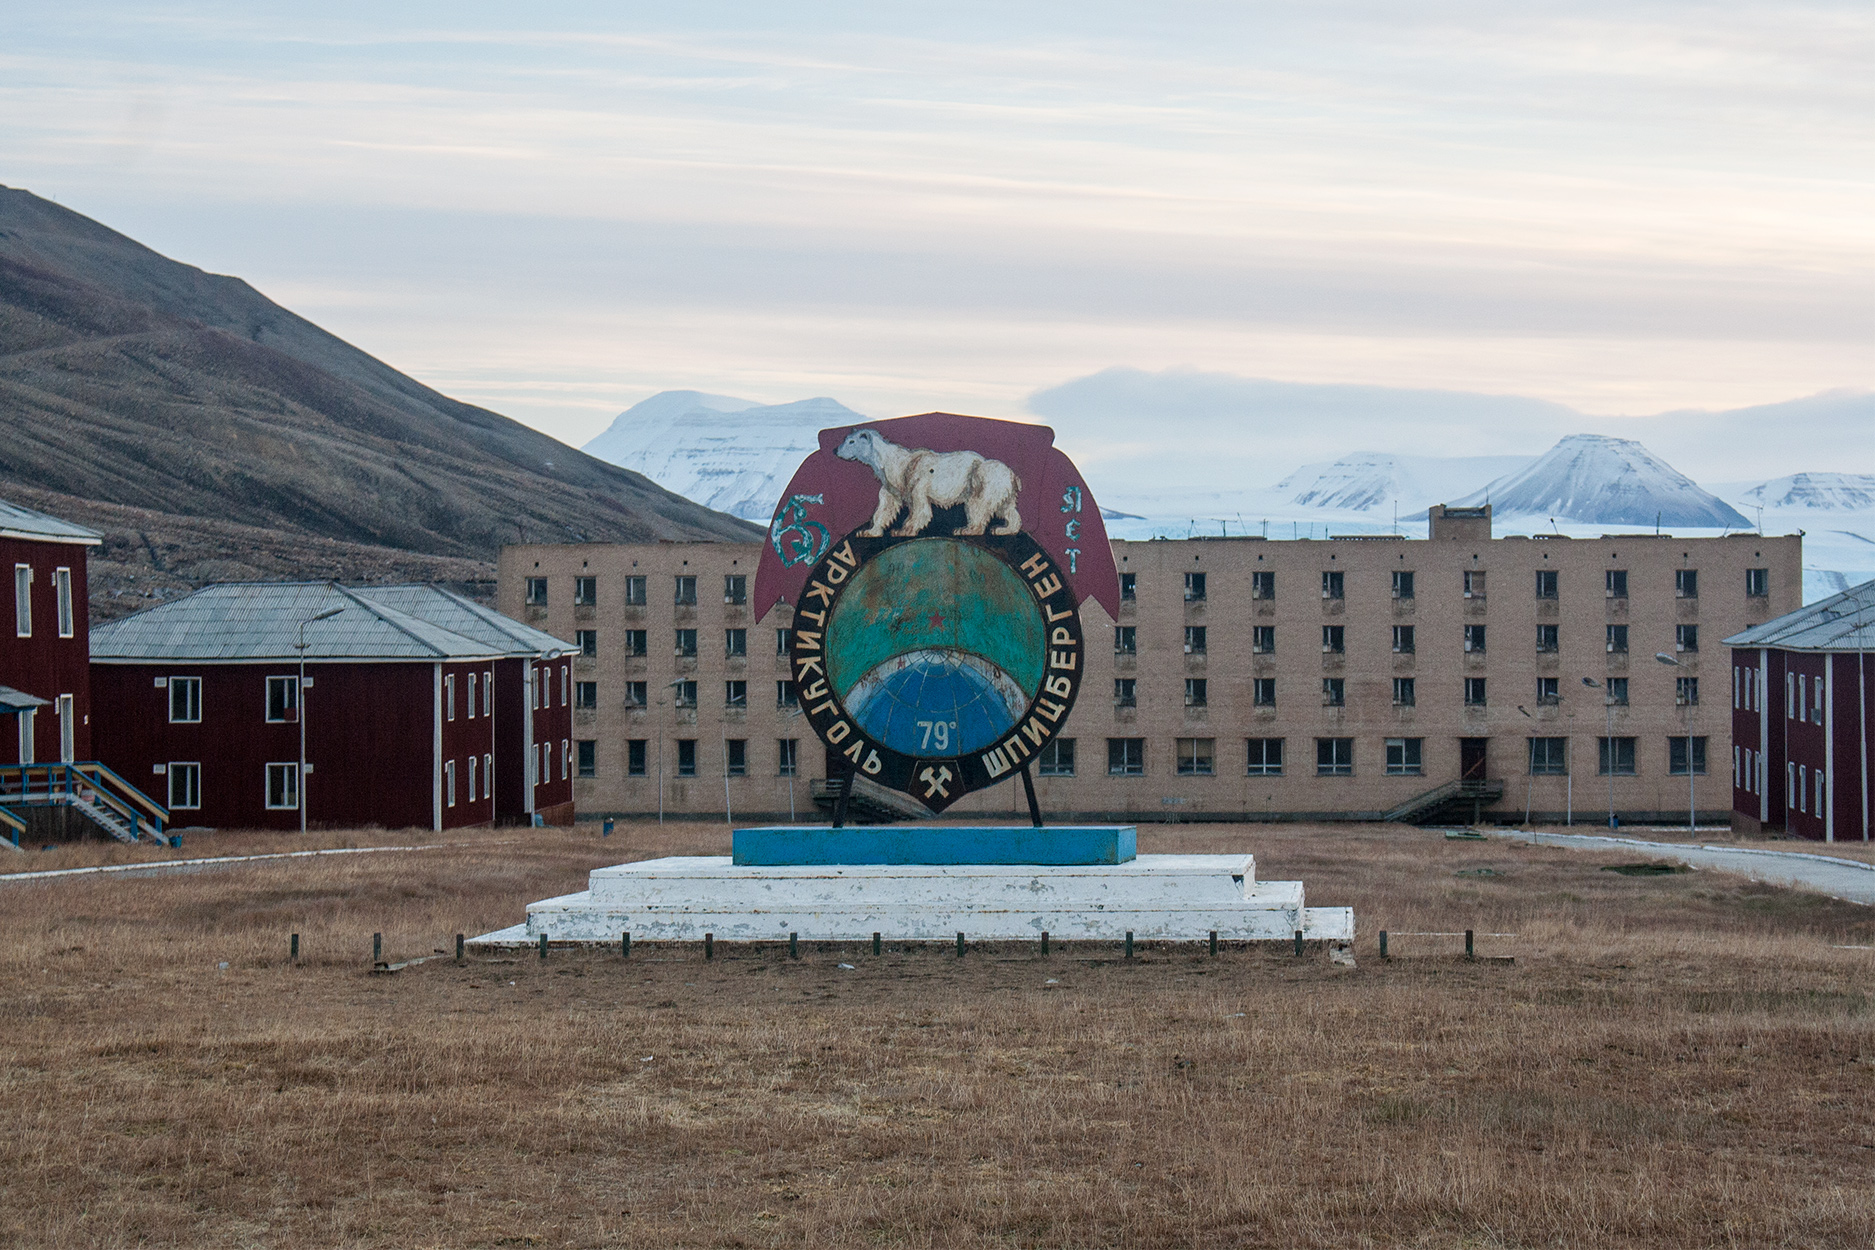 An abadnoned Russian mining town in Svalbard